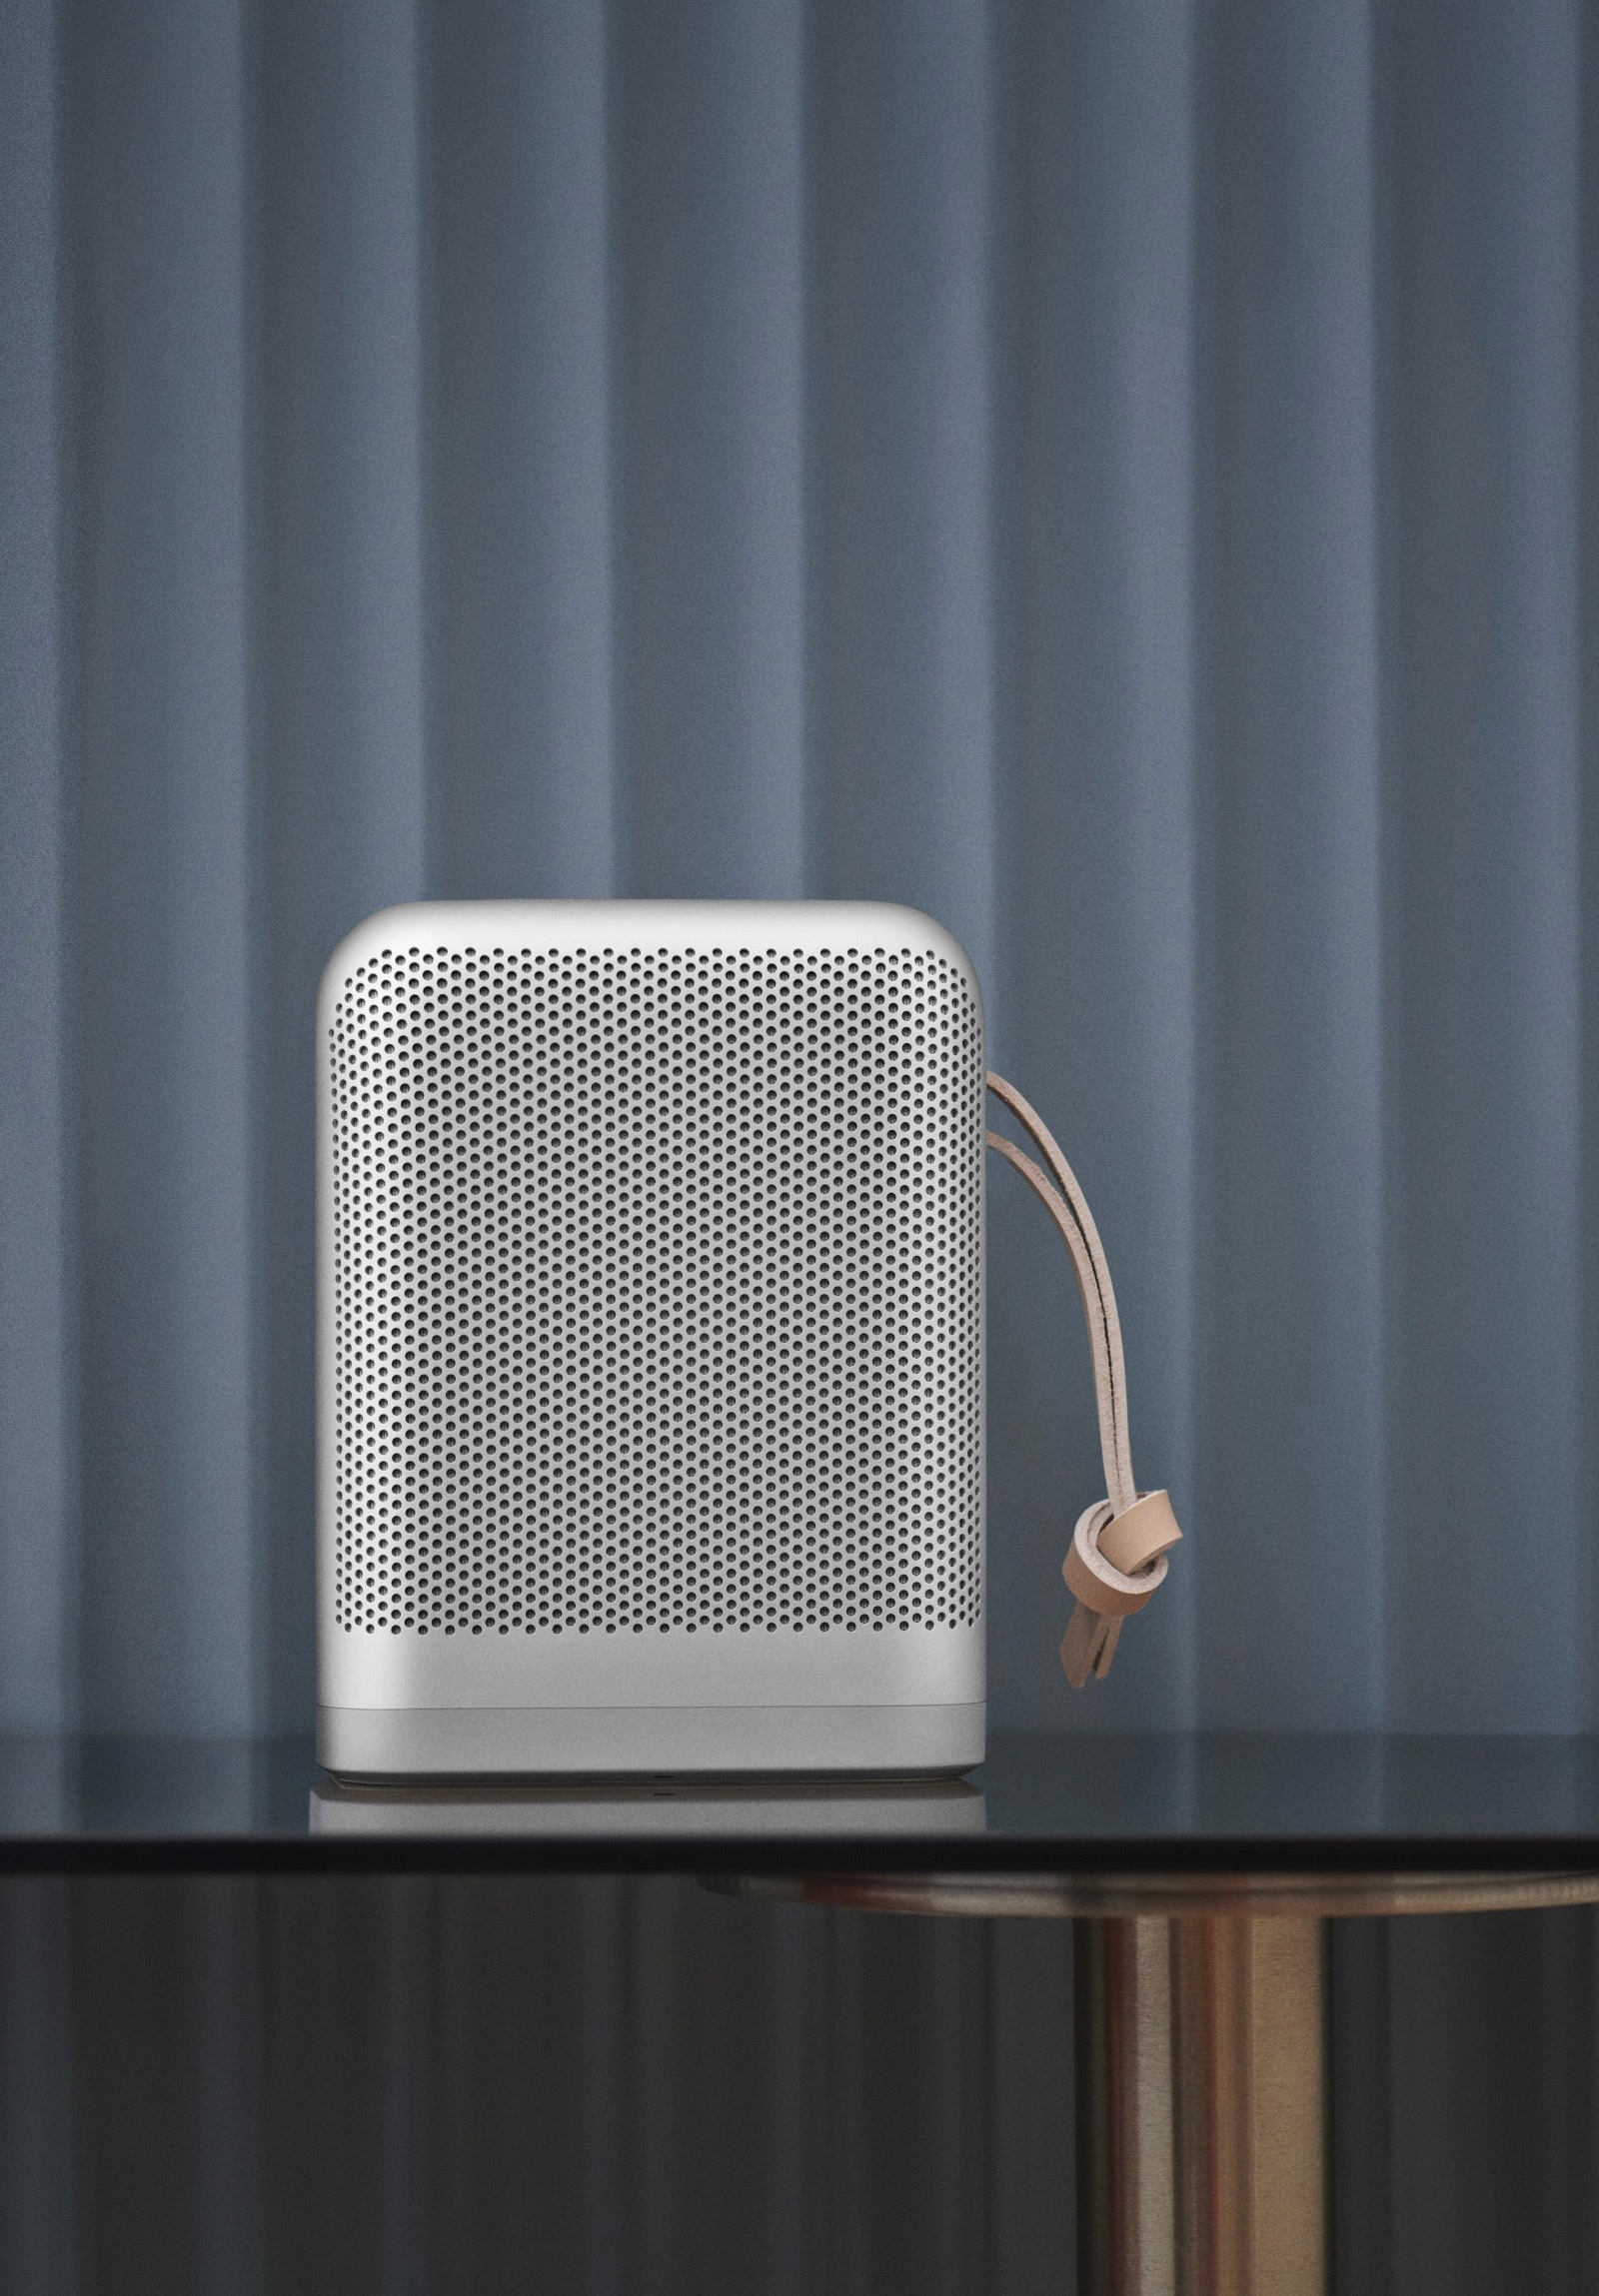 beoplay-p6-natural-26622410167-o-1.jpg